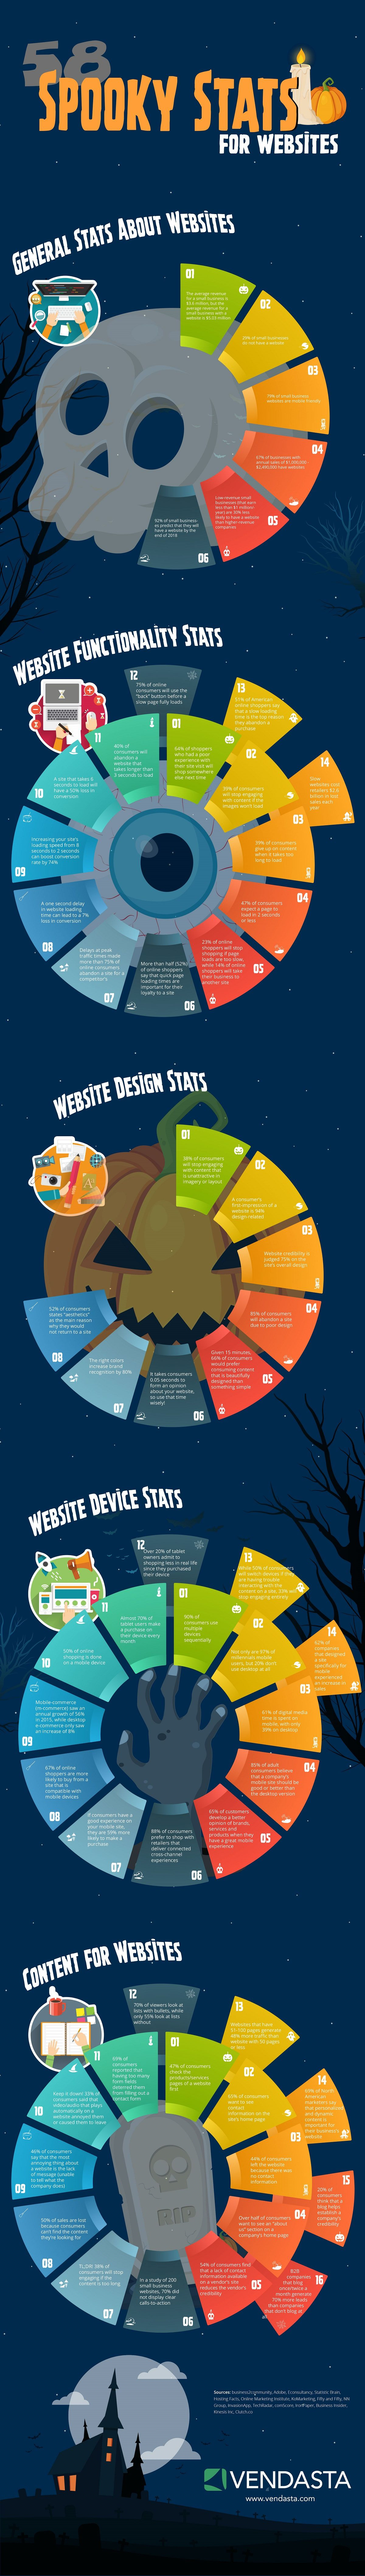 58 Spooky Statistics For Websites Infographic Wordpress Website Design Web Design Infographic